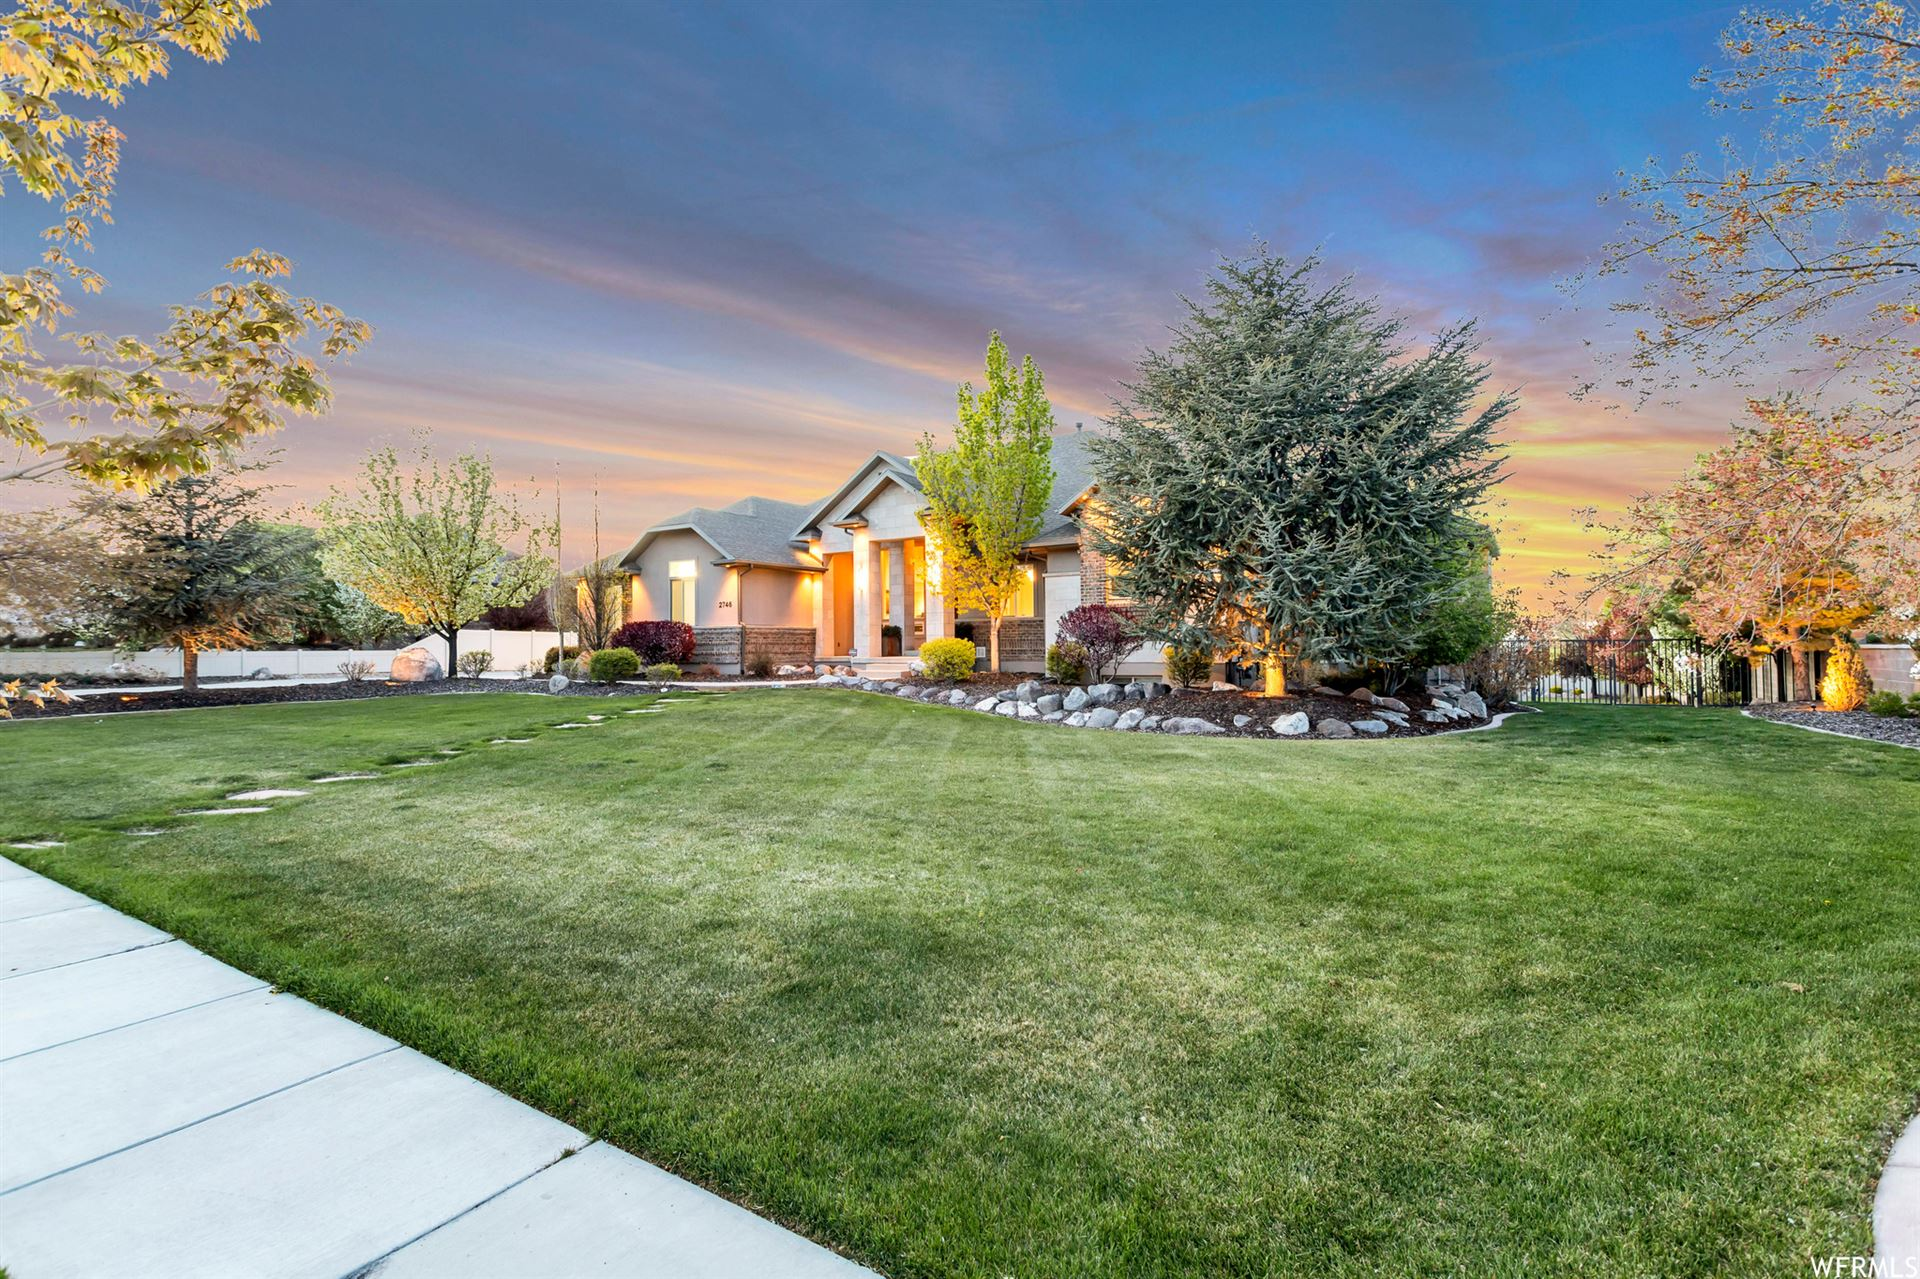 Photo of 2746 W 15250 S, Bluffdale, UT 84065 (MLS # 1727597)